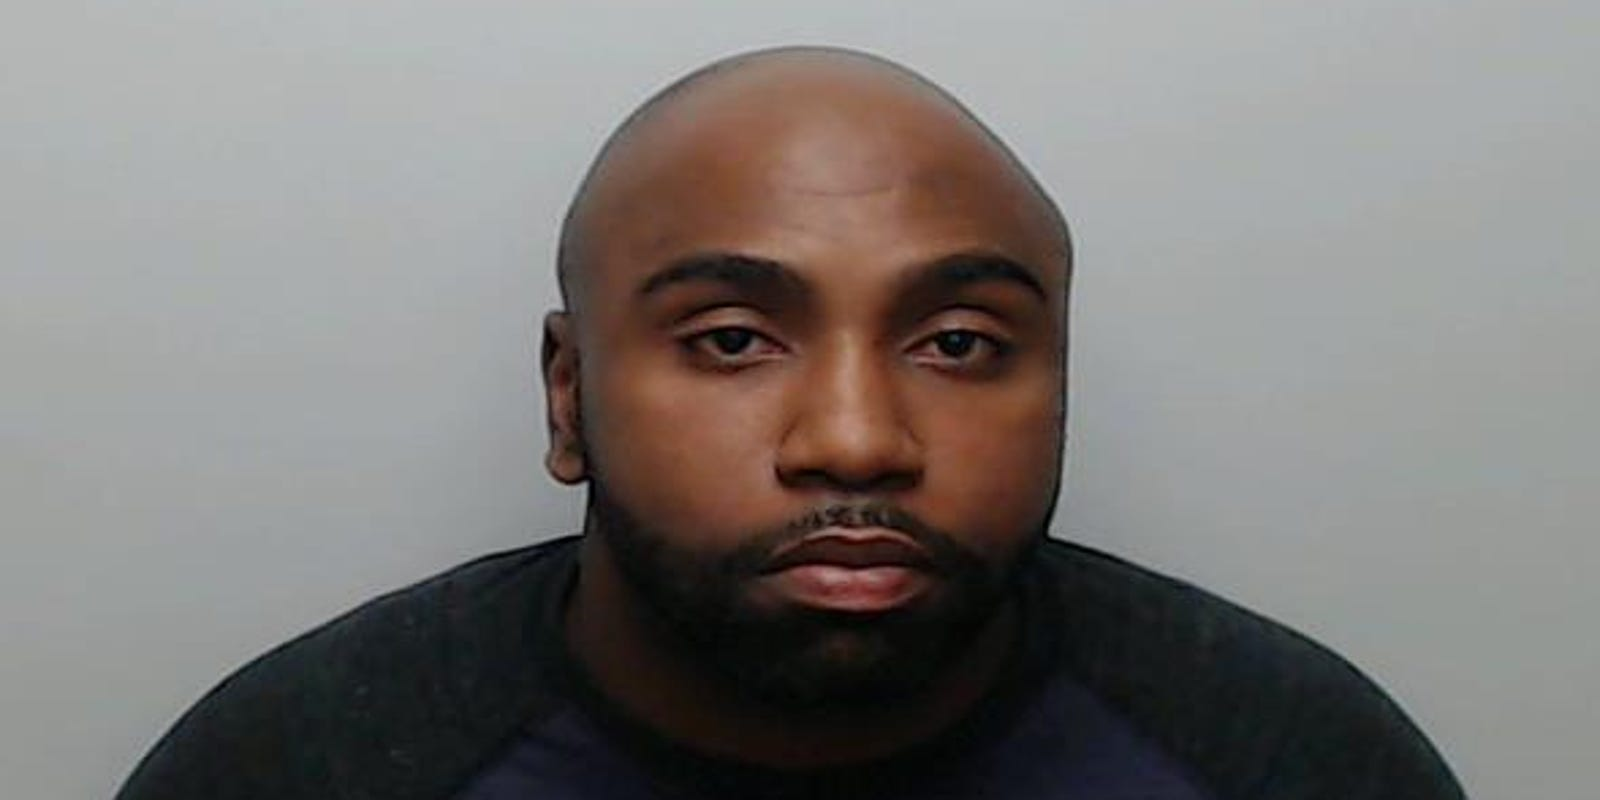 Louisville man arrested for impersonating officer